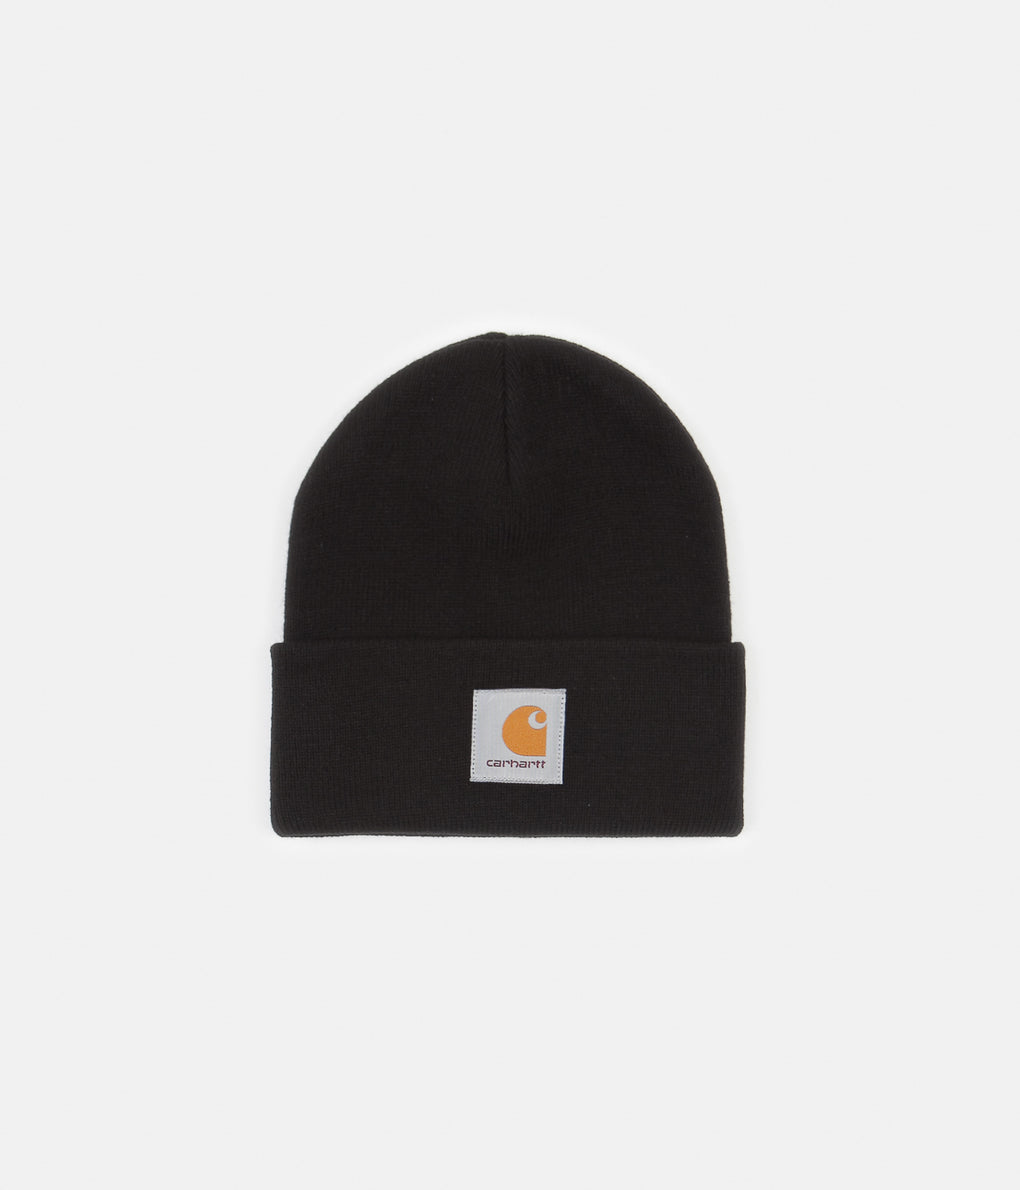 Carhartt Short Watch Hat Beanie - Black